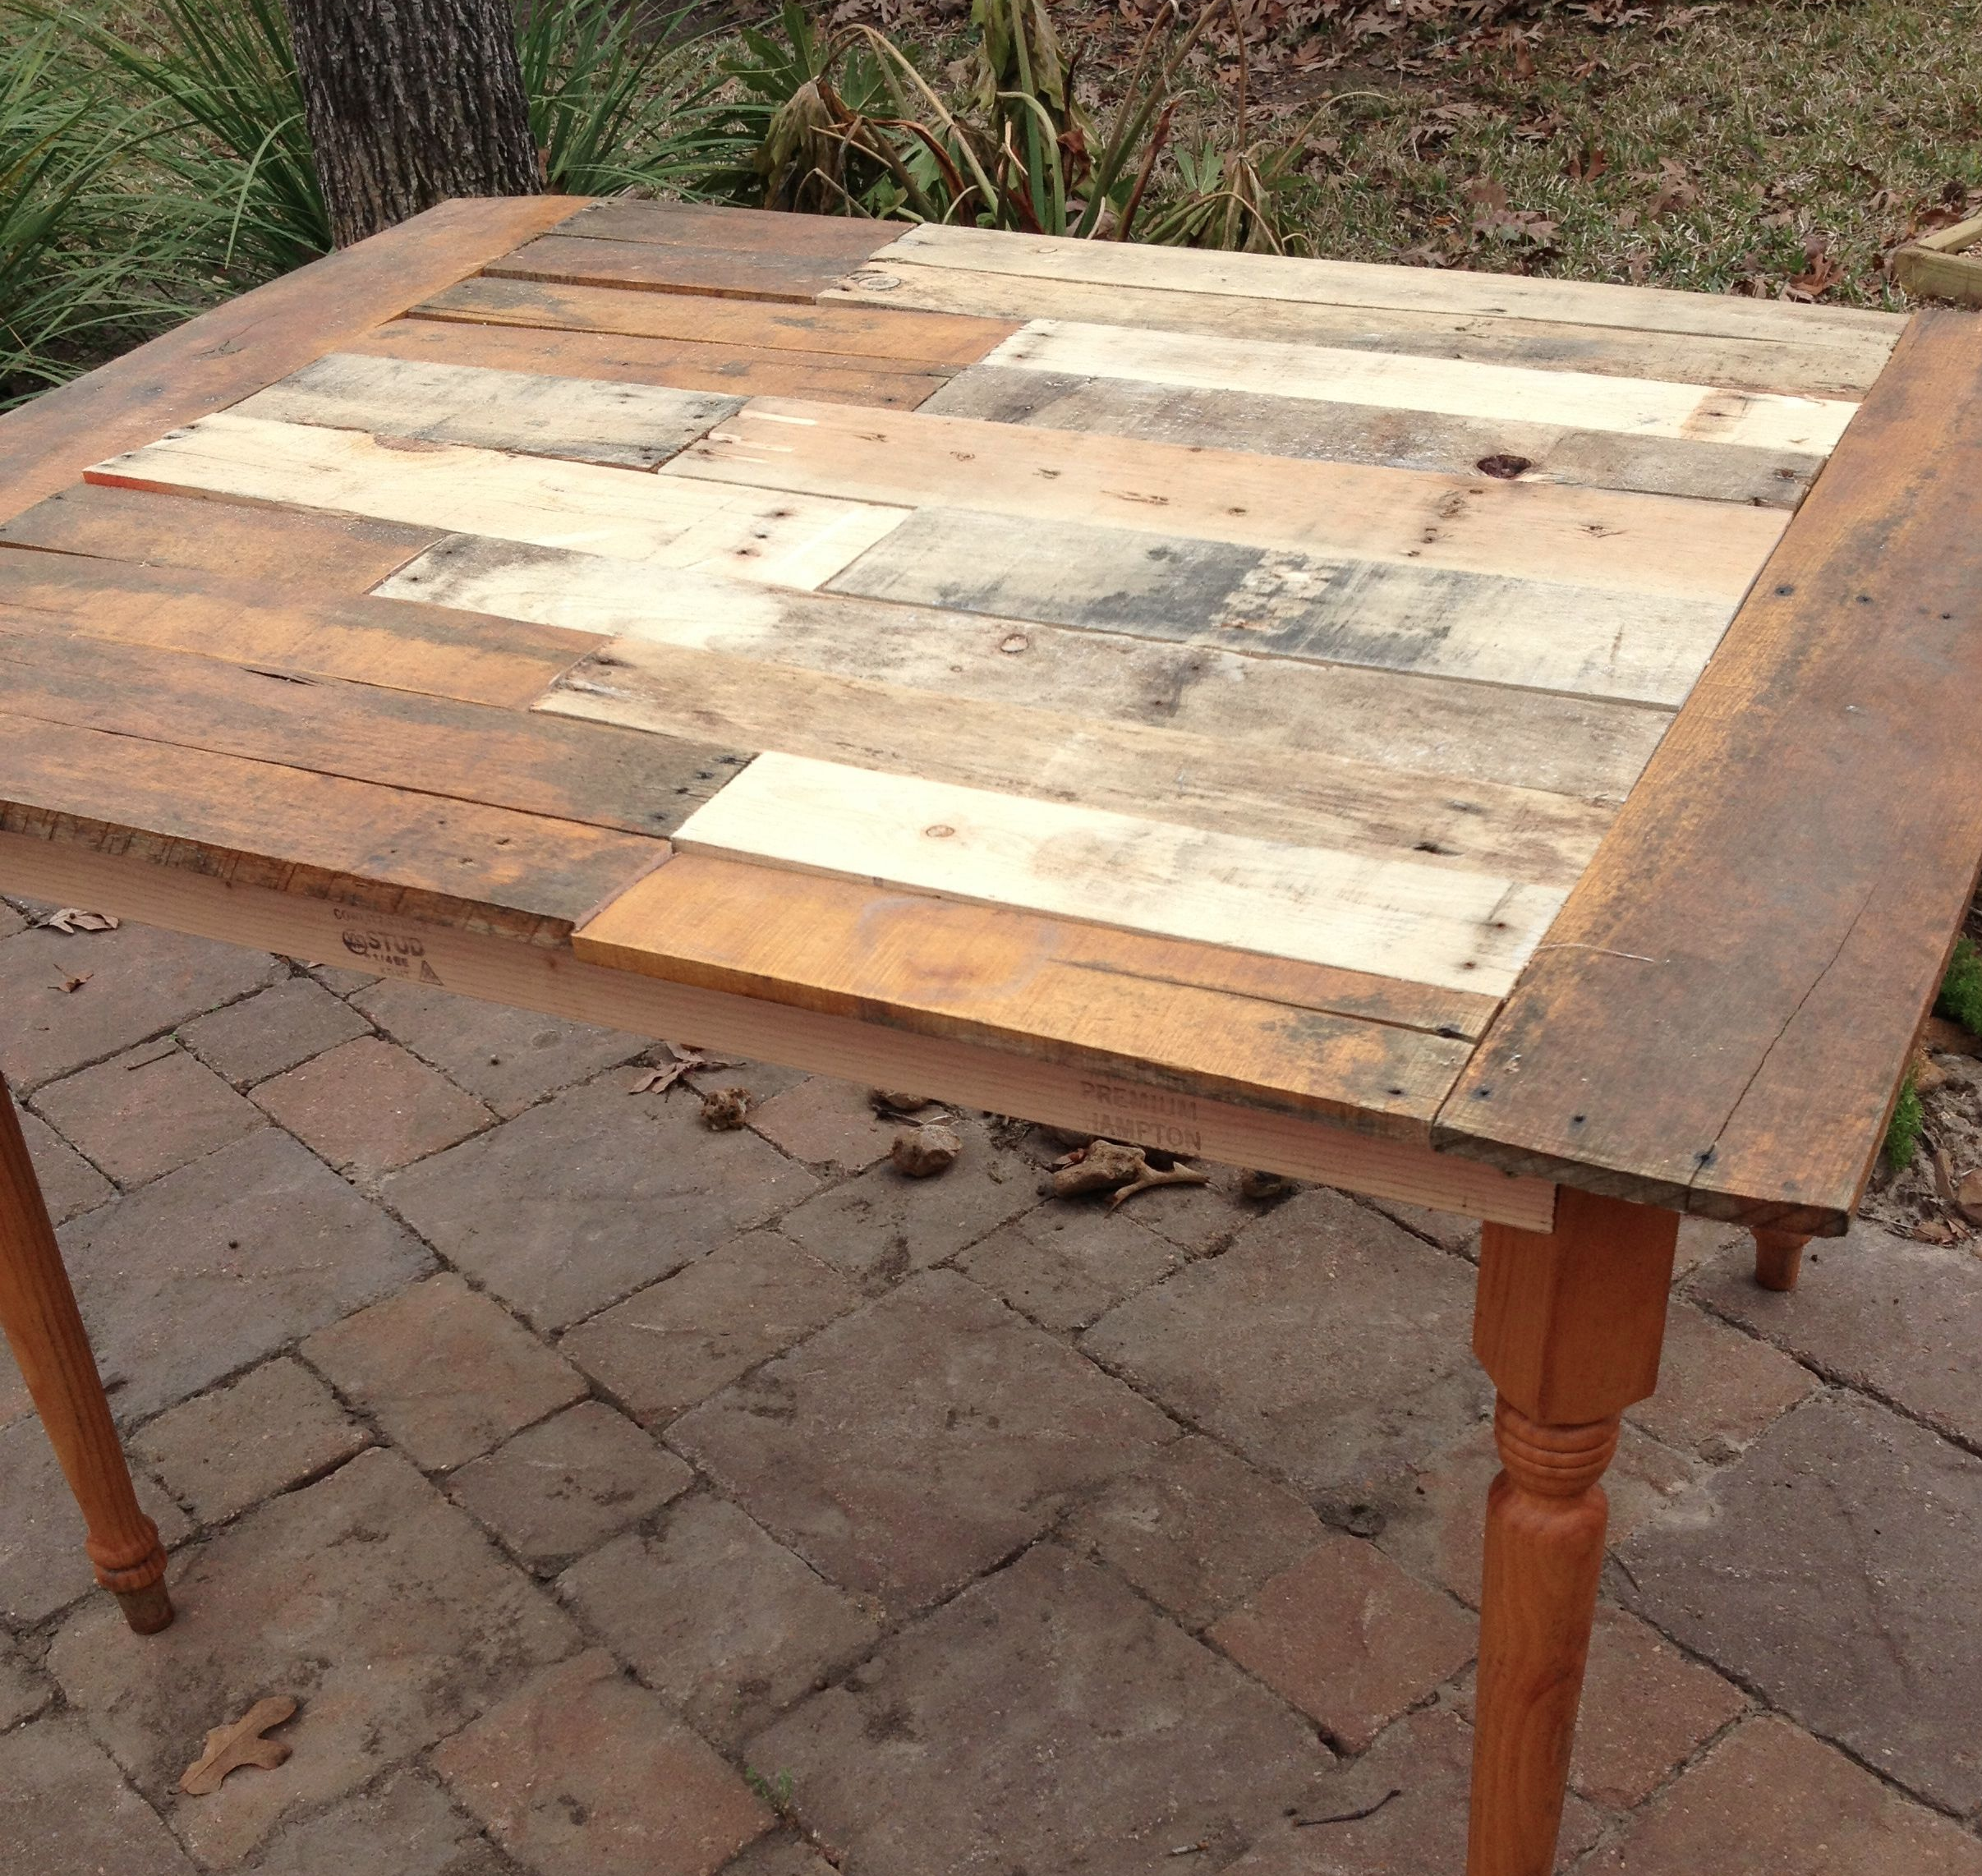 Hey look, it's a table made from a pallet.